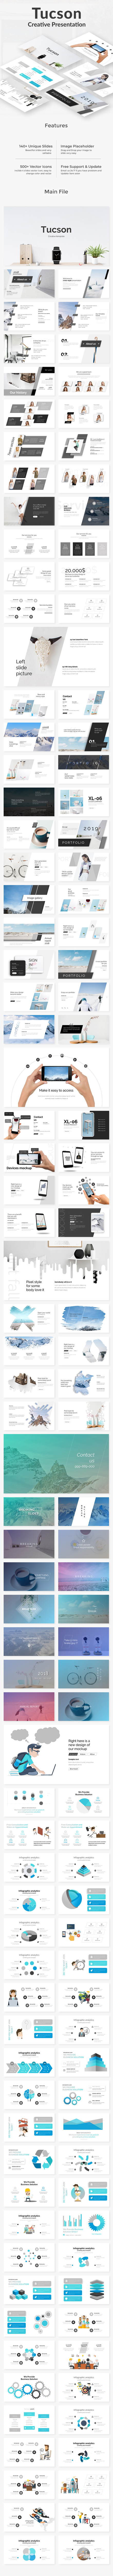 Tucson Creative Google Slide Template - Google Slides Presentation Templates